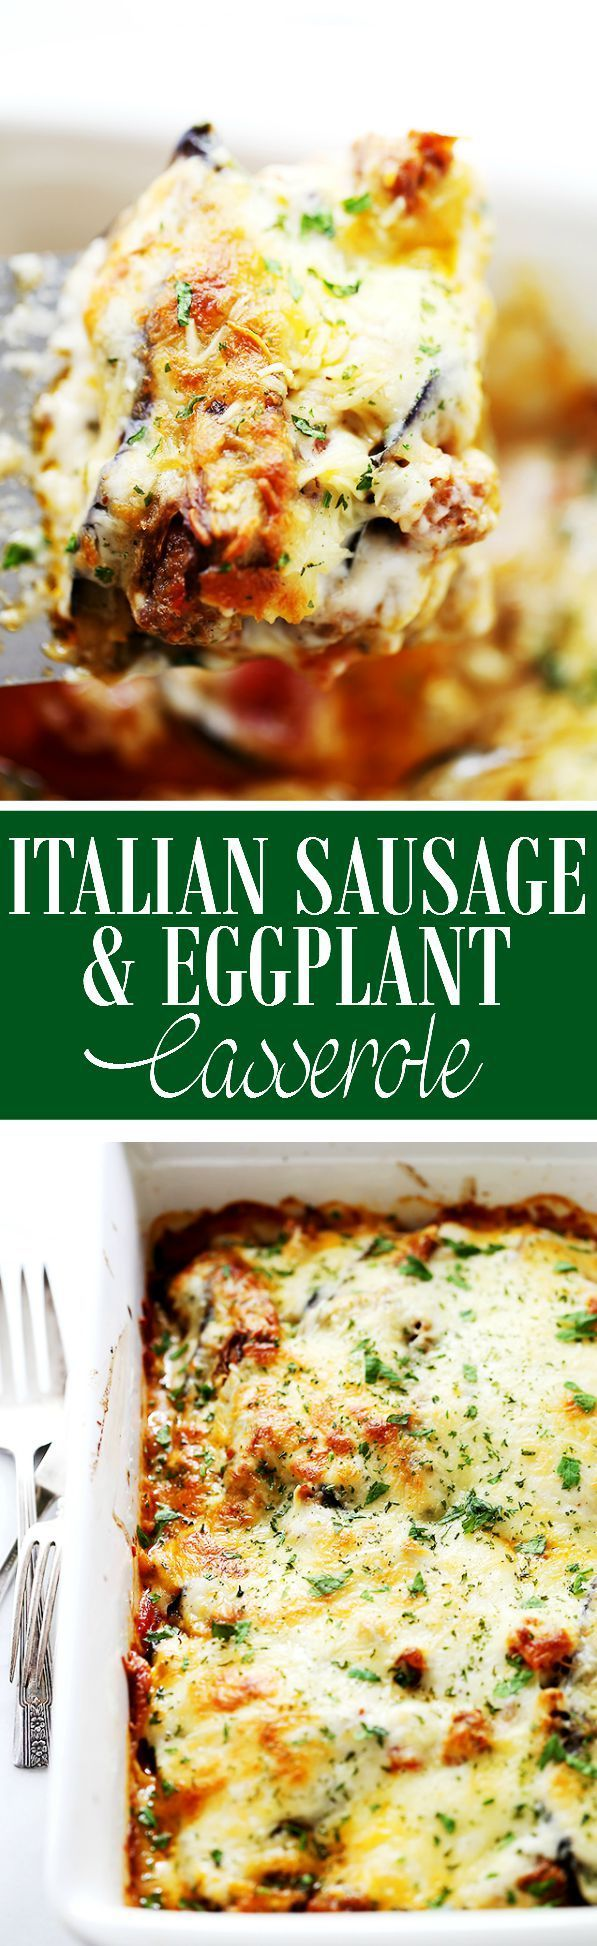 Italian Sausage and Eggplant Casserole   www.diethood.com   Layers of delicious Italian Sausage and eggplant slices covered in white (Bechamel) sauce and gooey cheese.